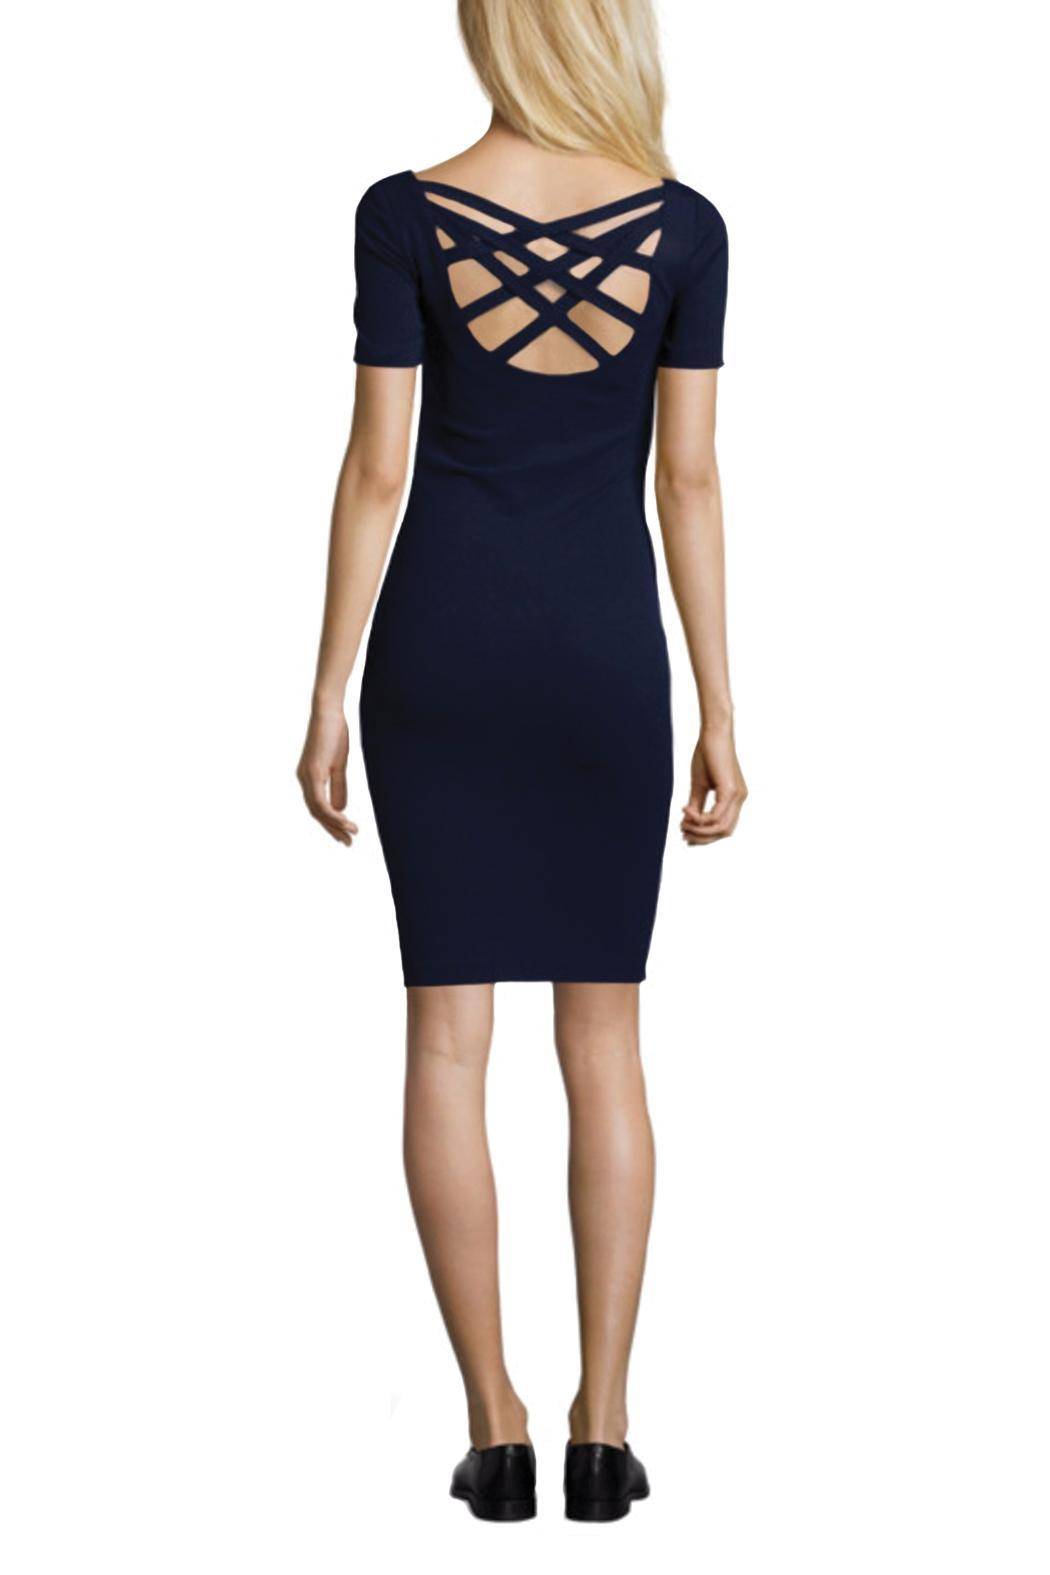 hotel particulier Navy Dress - Front Full Image